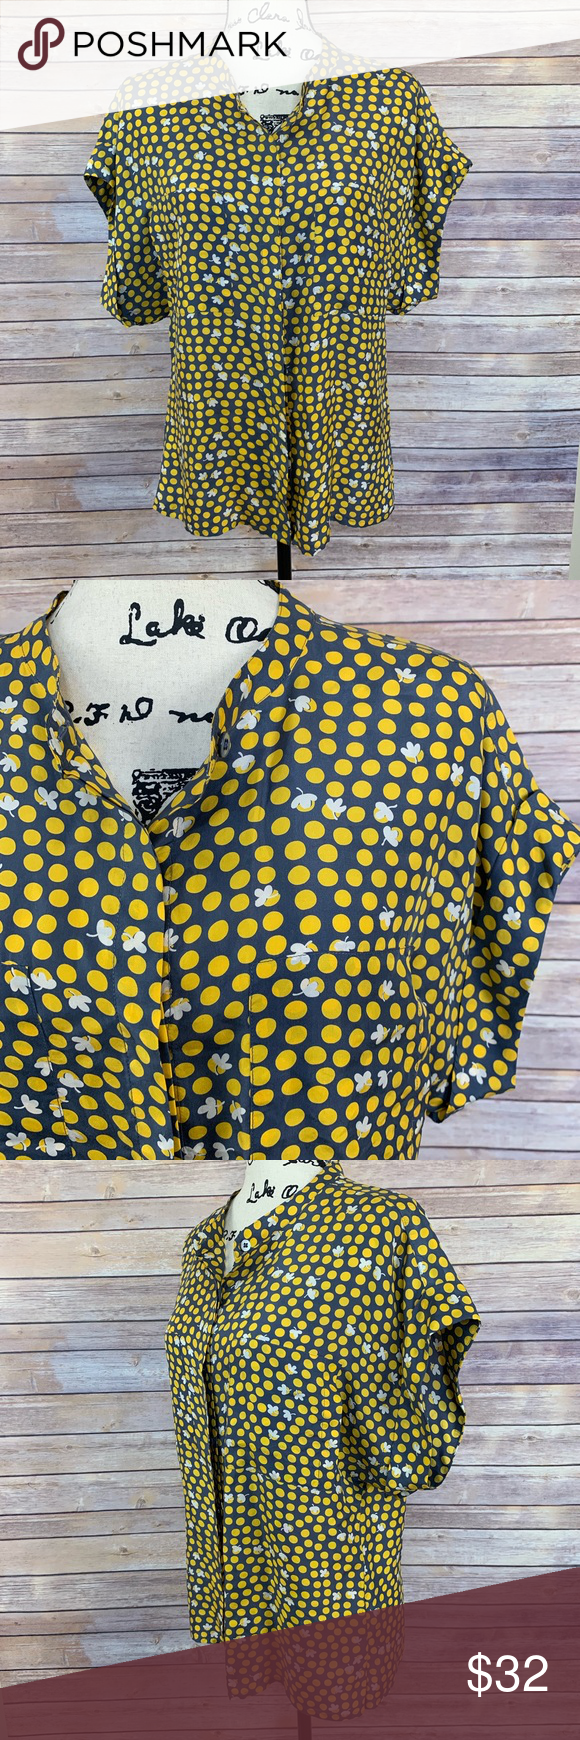 e5c459422392a8 CAbi # 183 Clover Silk Blouse | L EUC silk shirt button front. Grey/gray  with yellow polka dots and white clovers. Tops